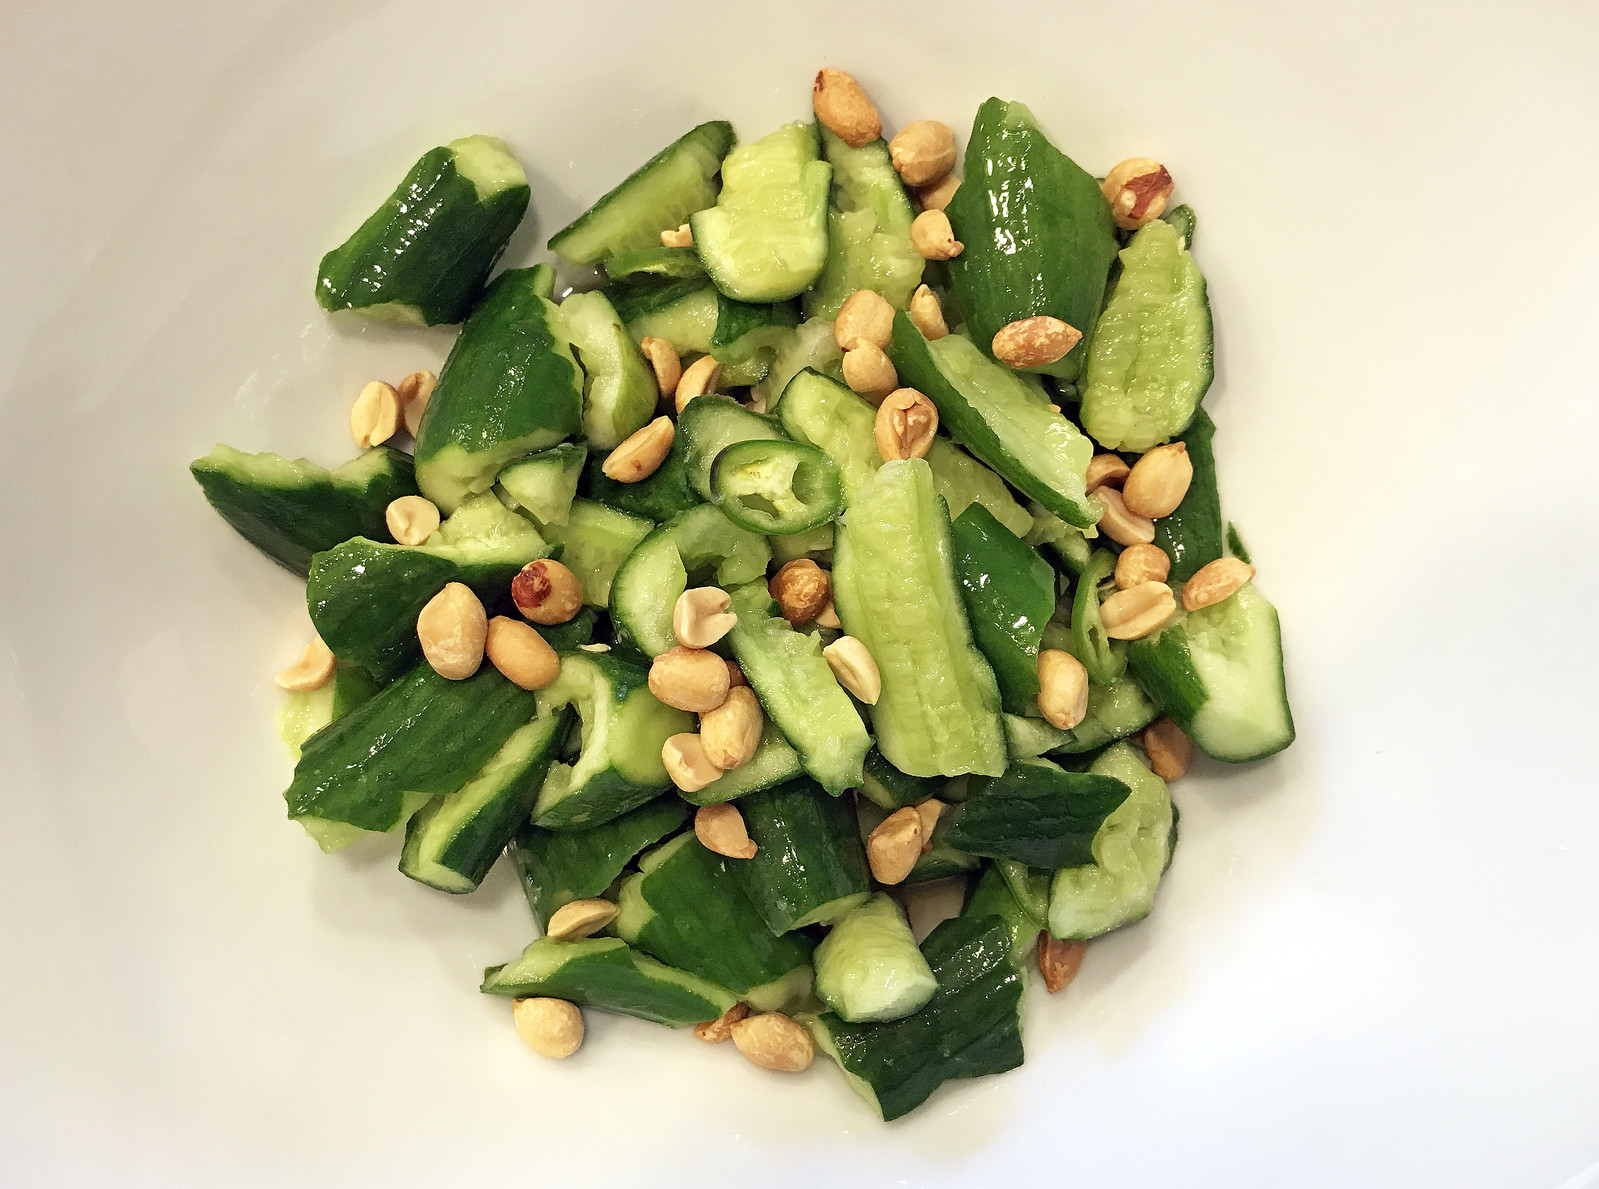 Smashed cucumber salad with hot vinegar